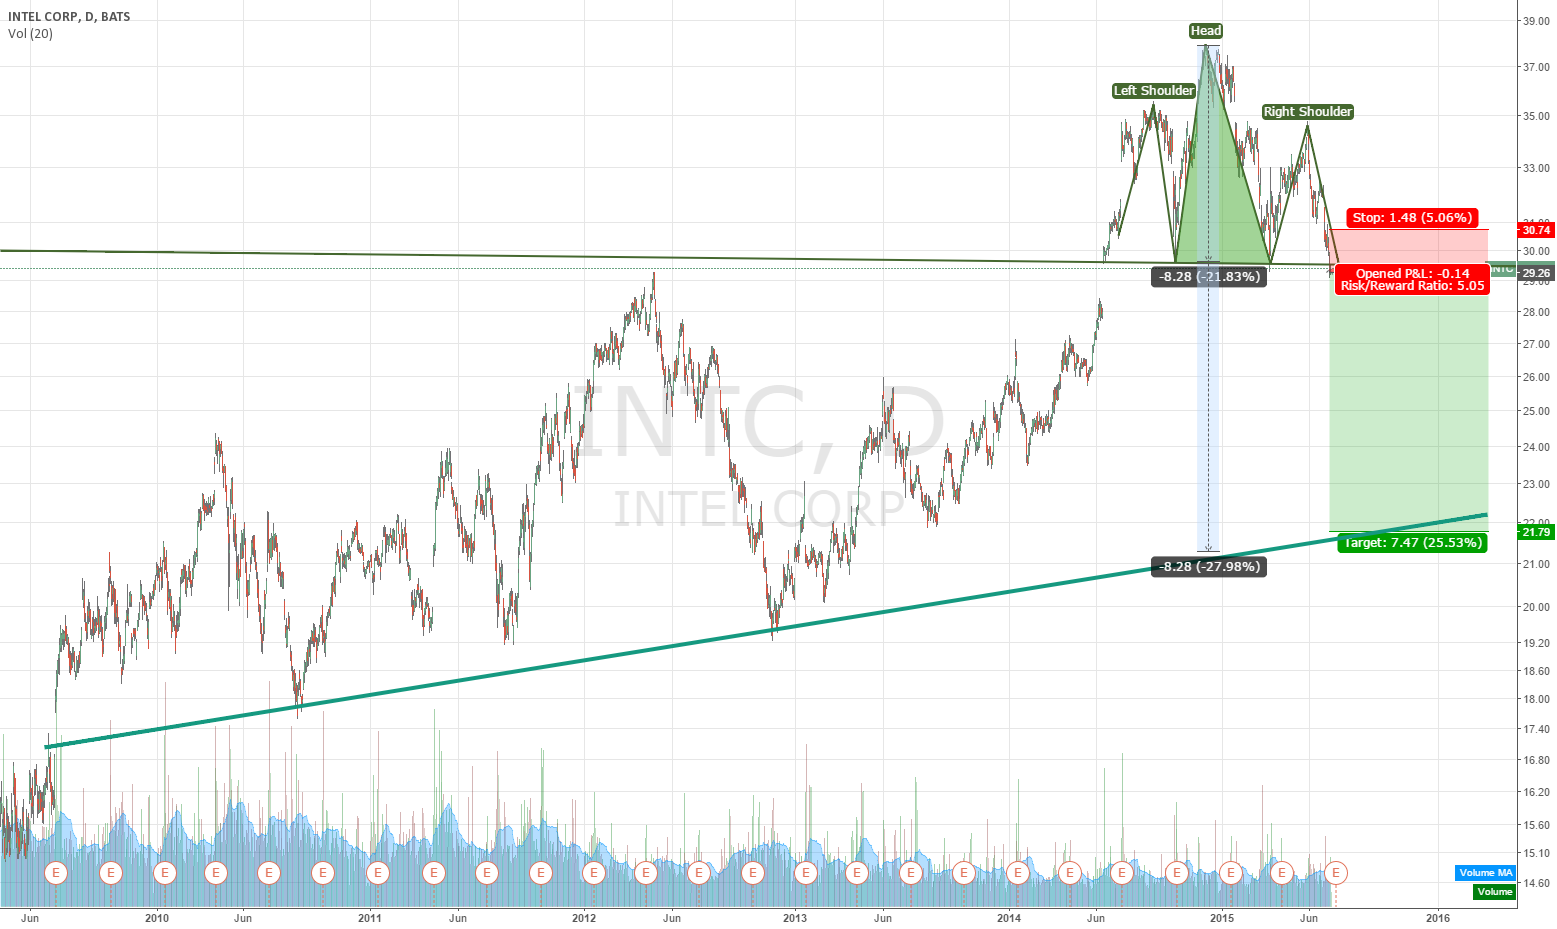 INTC going down fast, caused by head and shoulders